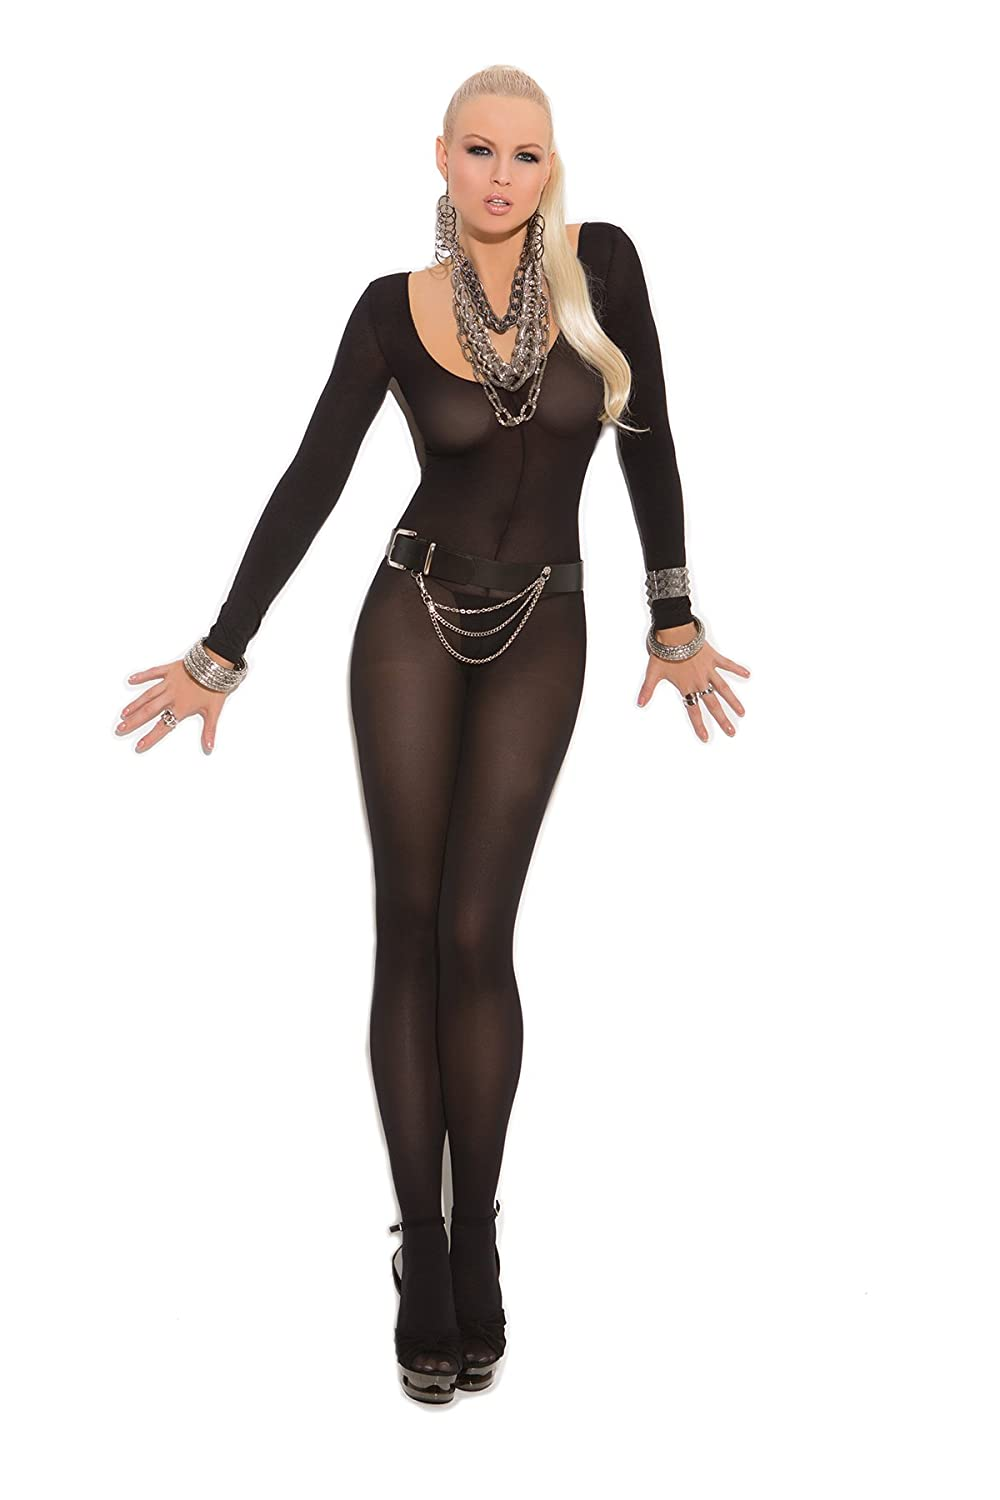 a4c8faeb59b Amazon.com  Sexy Women s Plus Size Opaque Long Sleeve Open Crotch  Bodystocking Lingerie (Queen Size